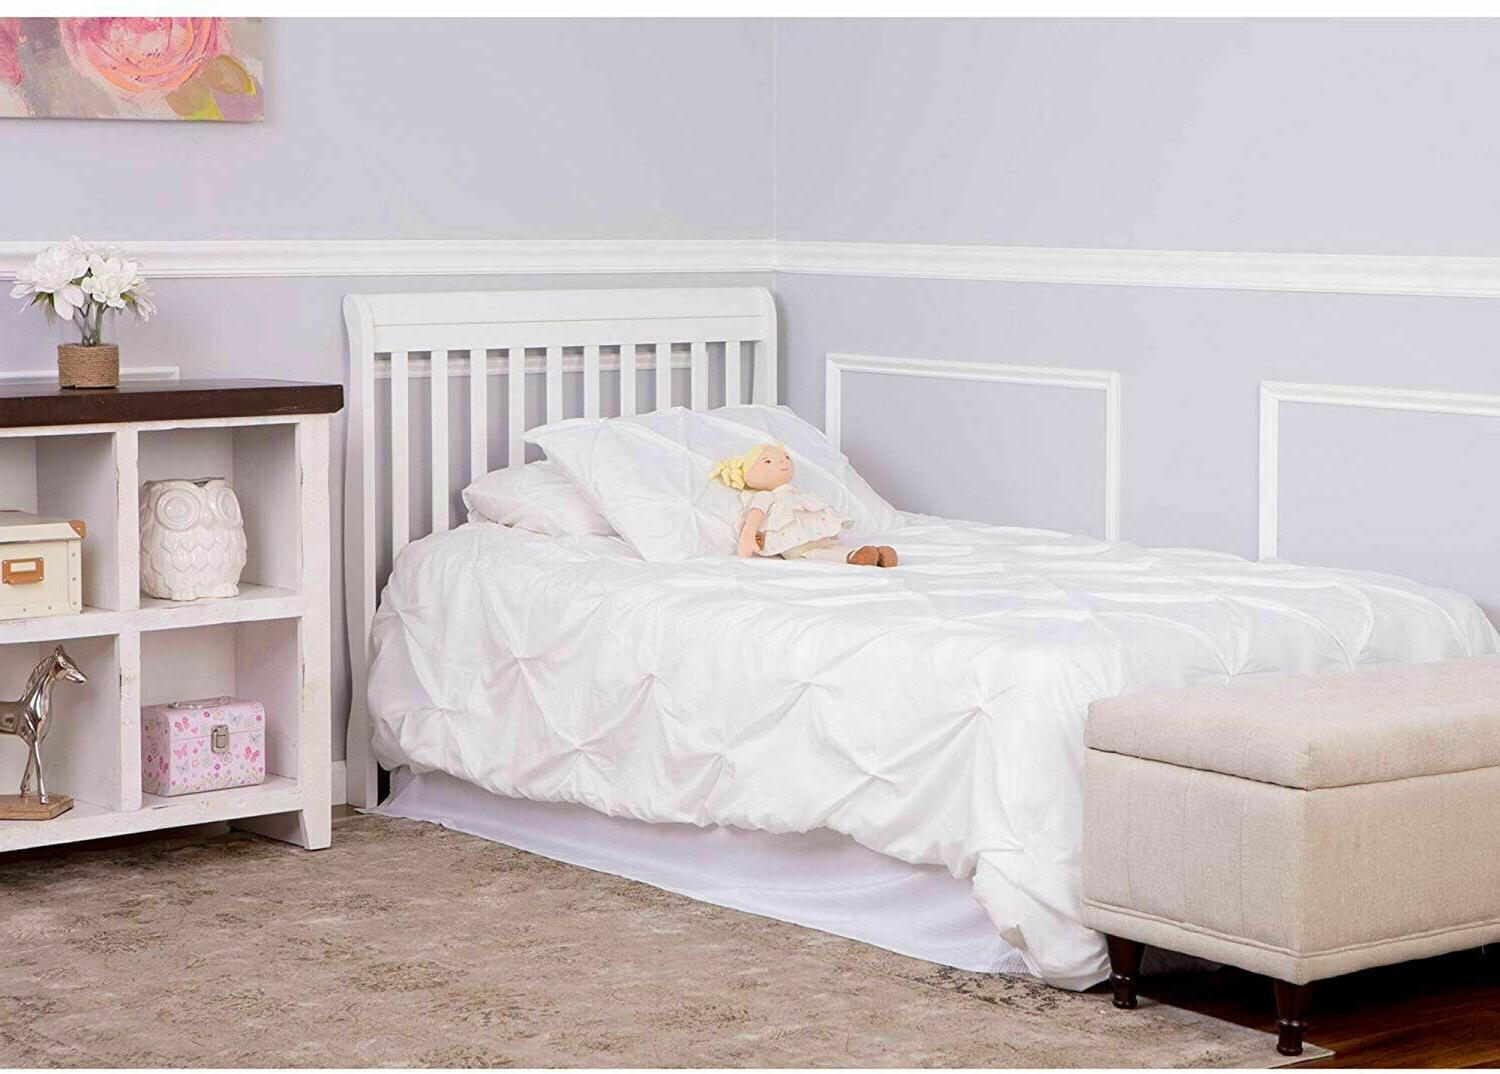 Baby Crib Me 4 in 1 Convertible Furniture Day